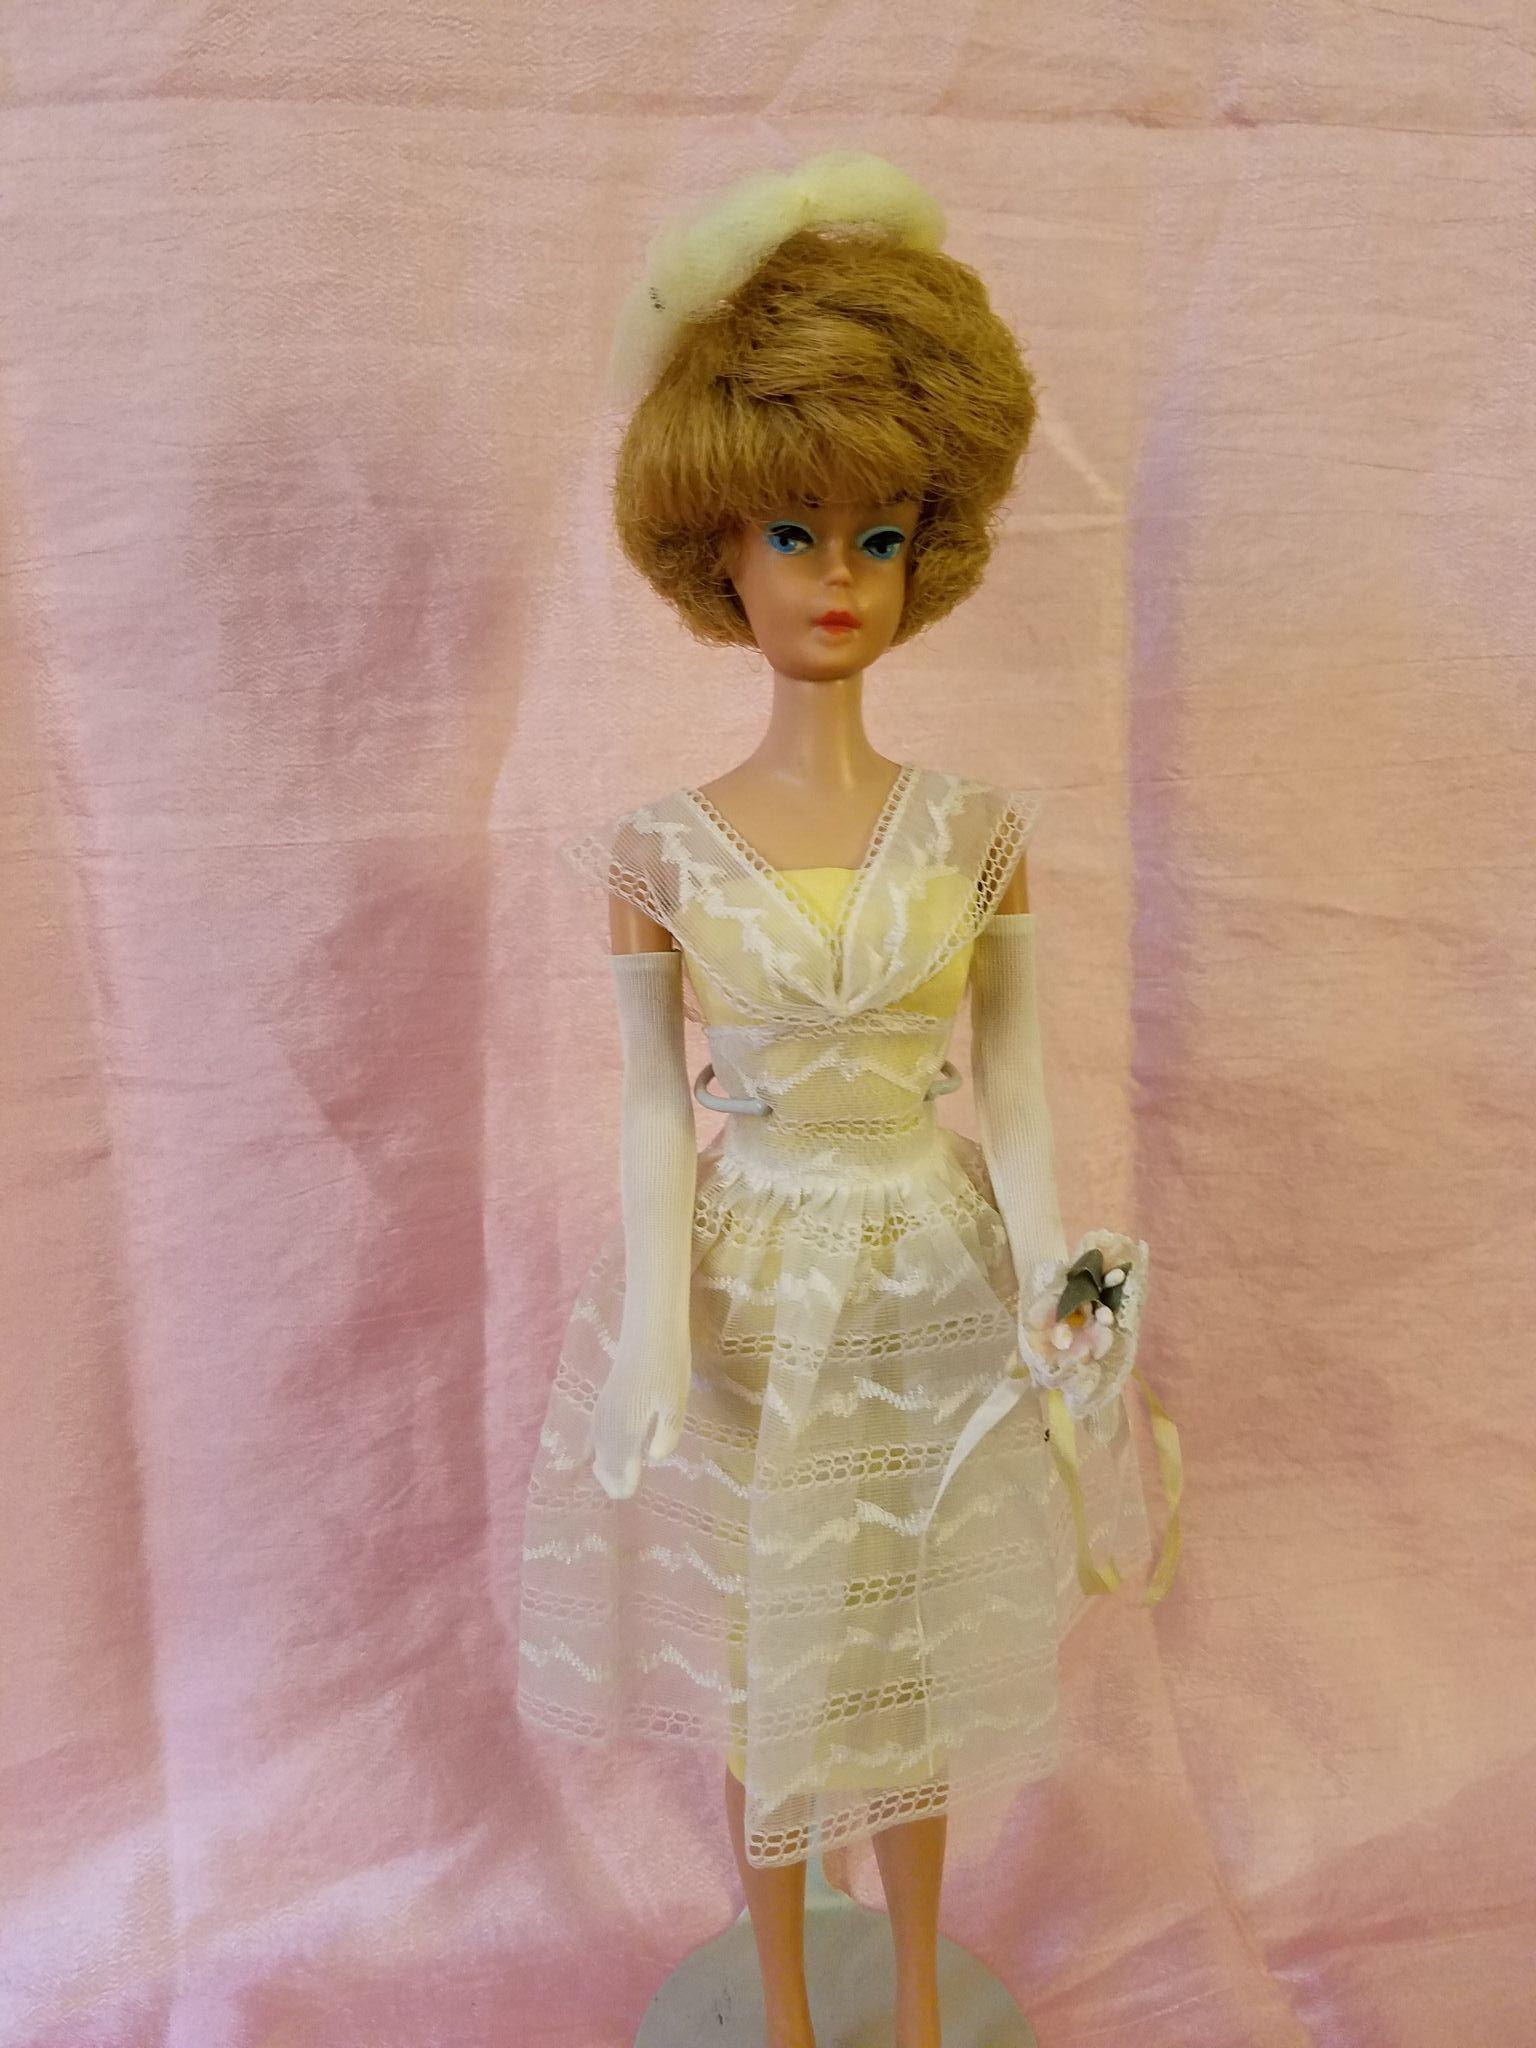 Orange Blossom Barbie Fashion